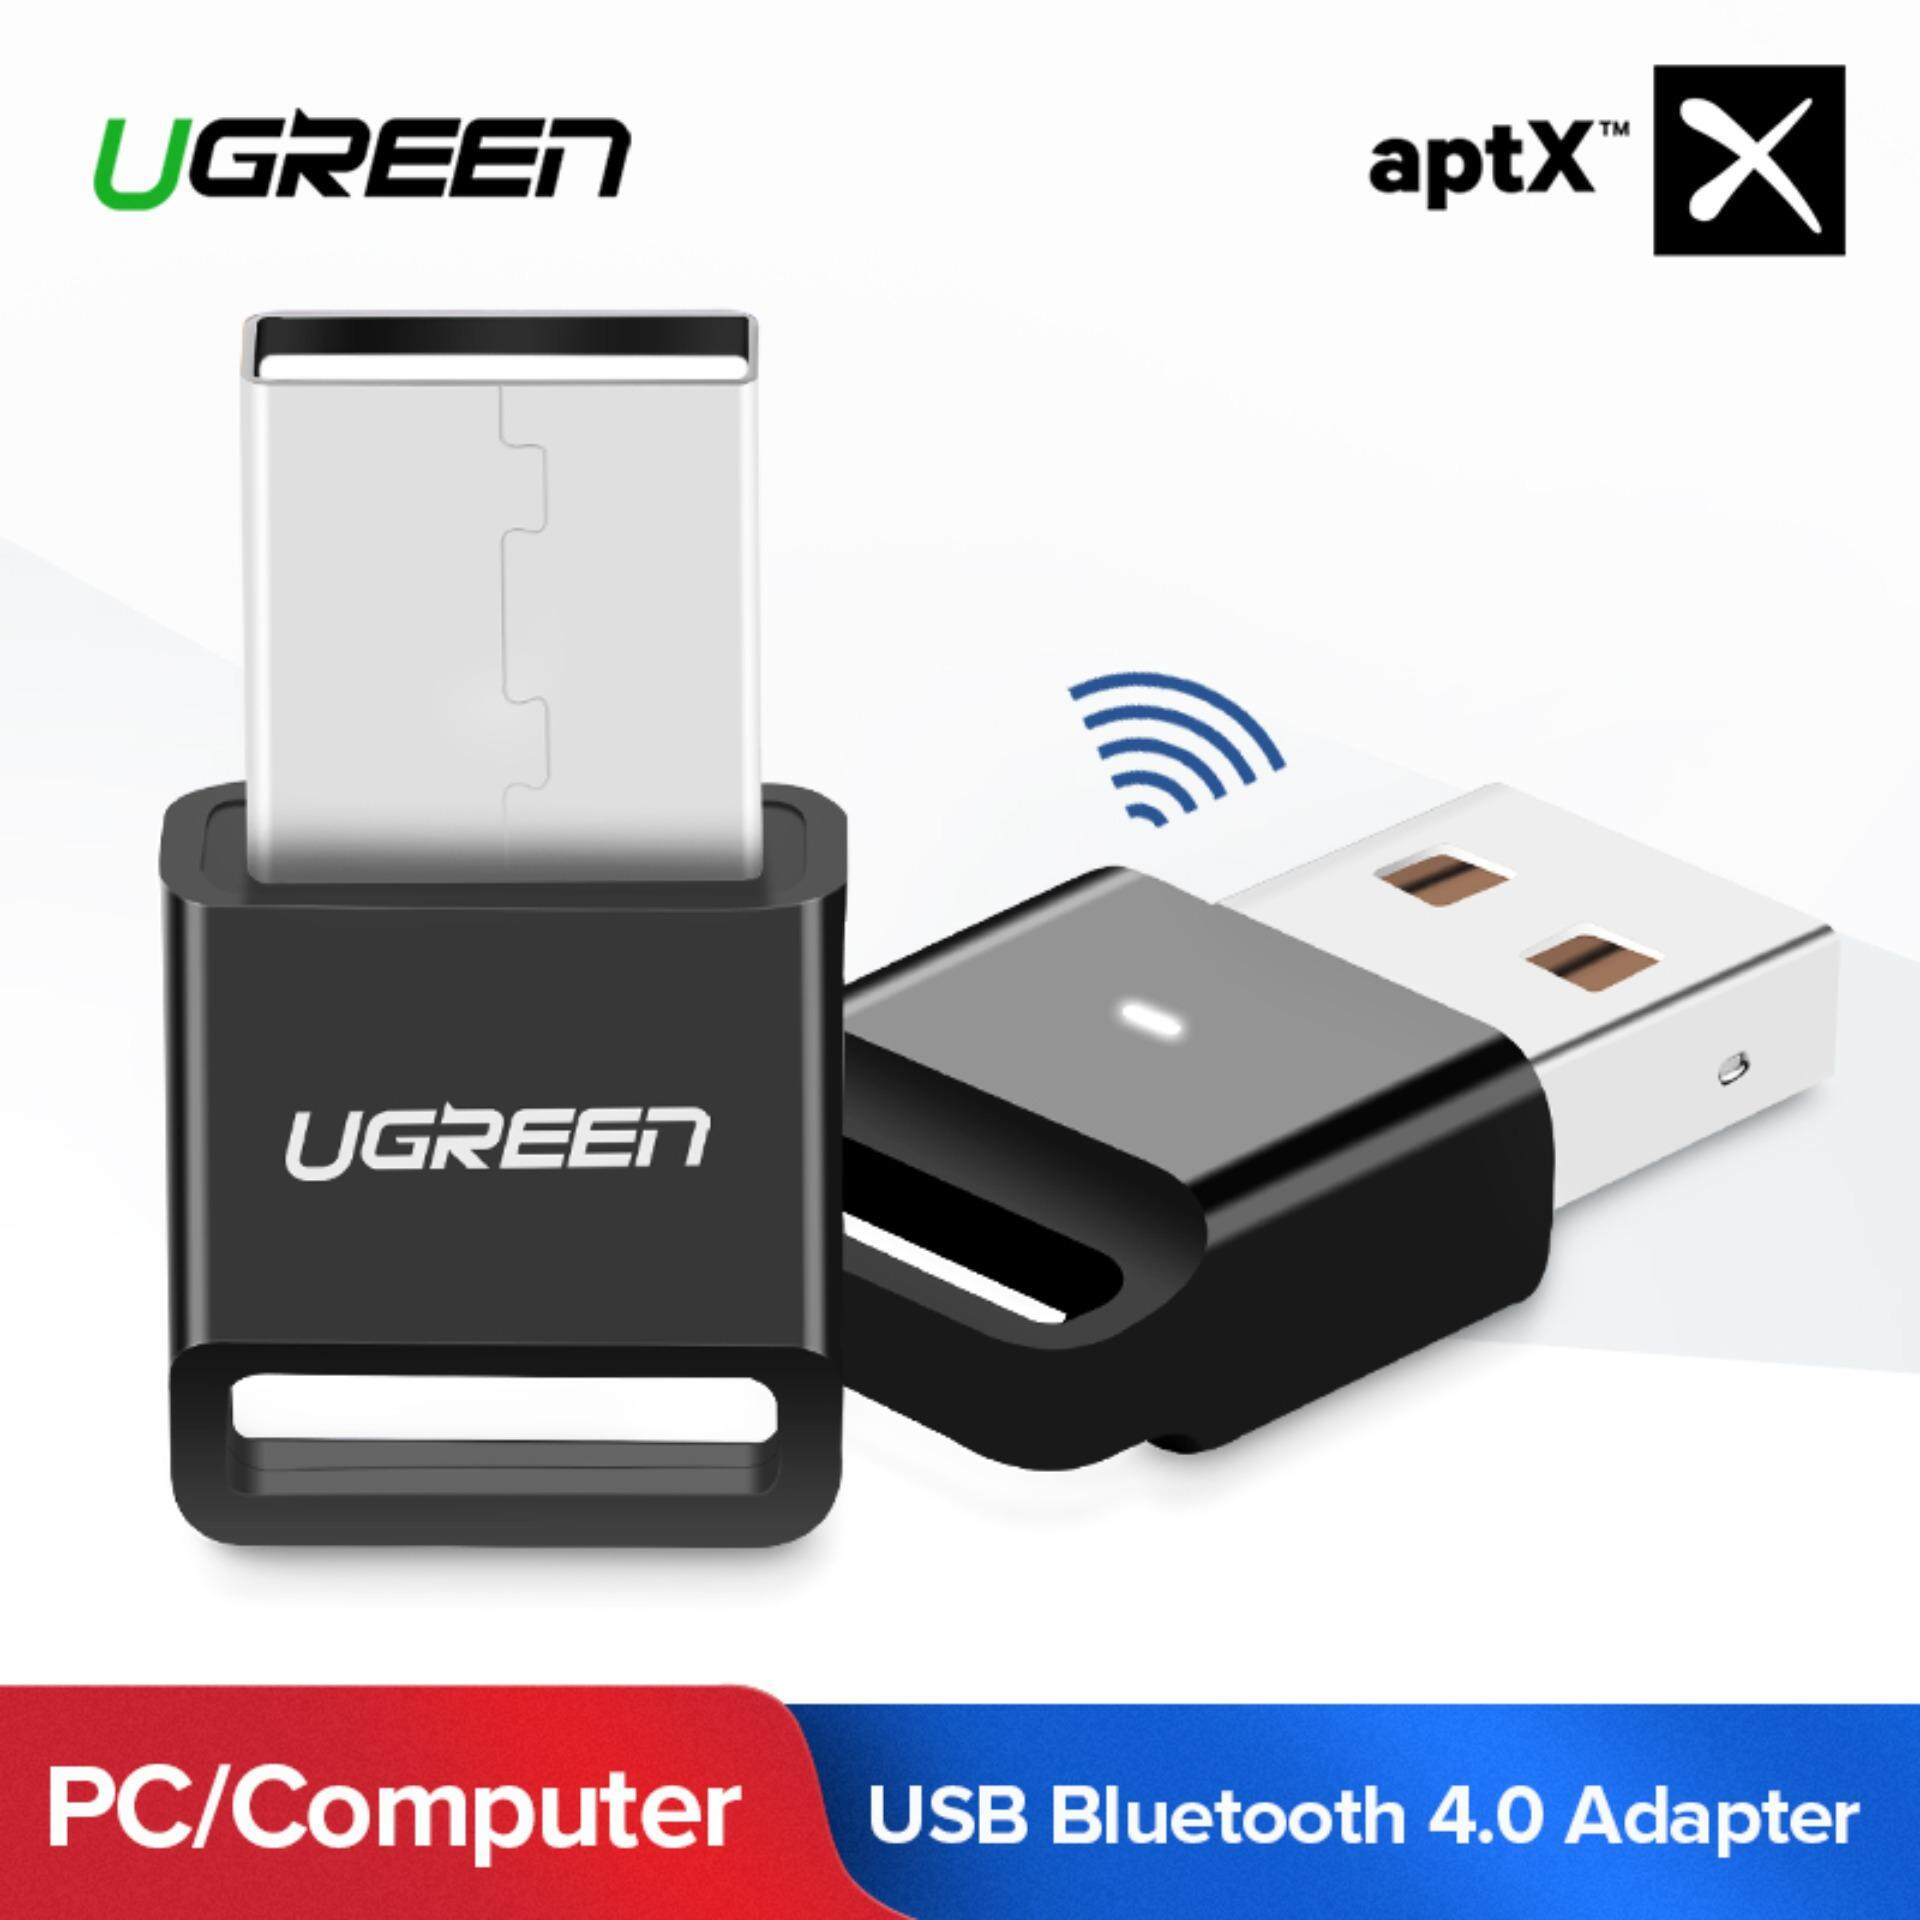 Bluetooth network adapters